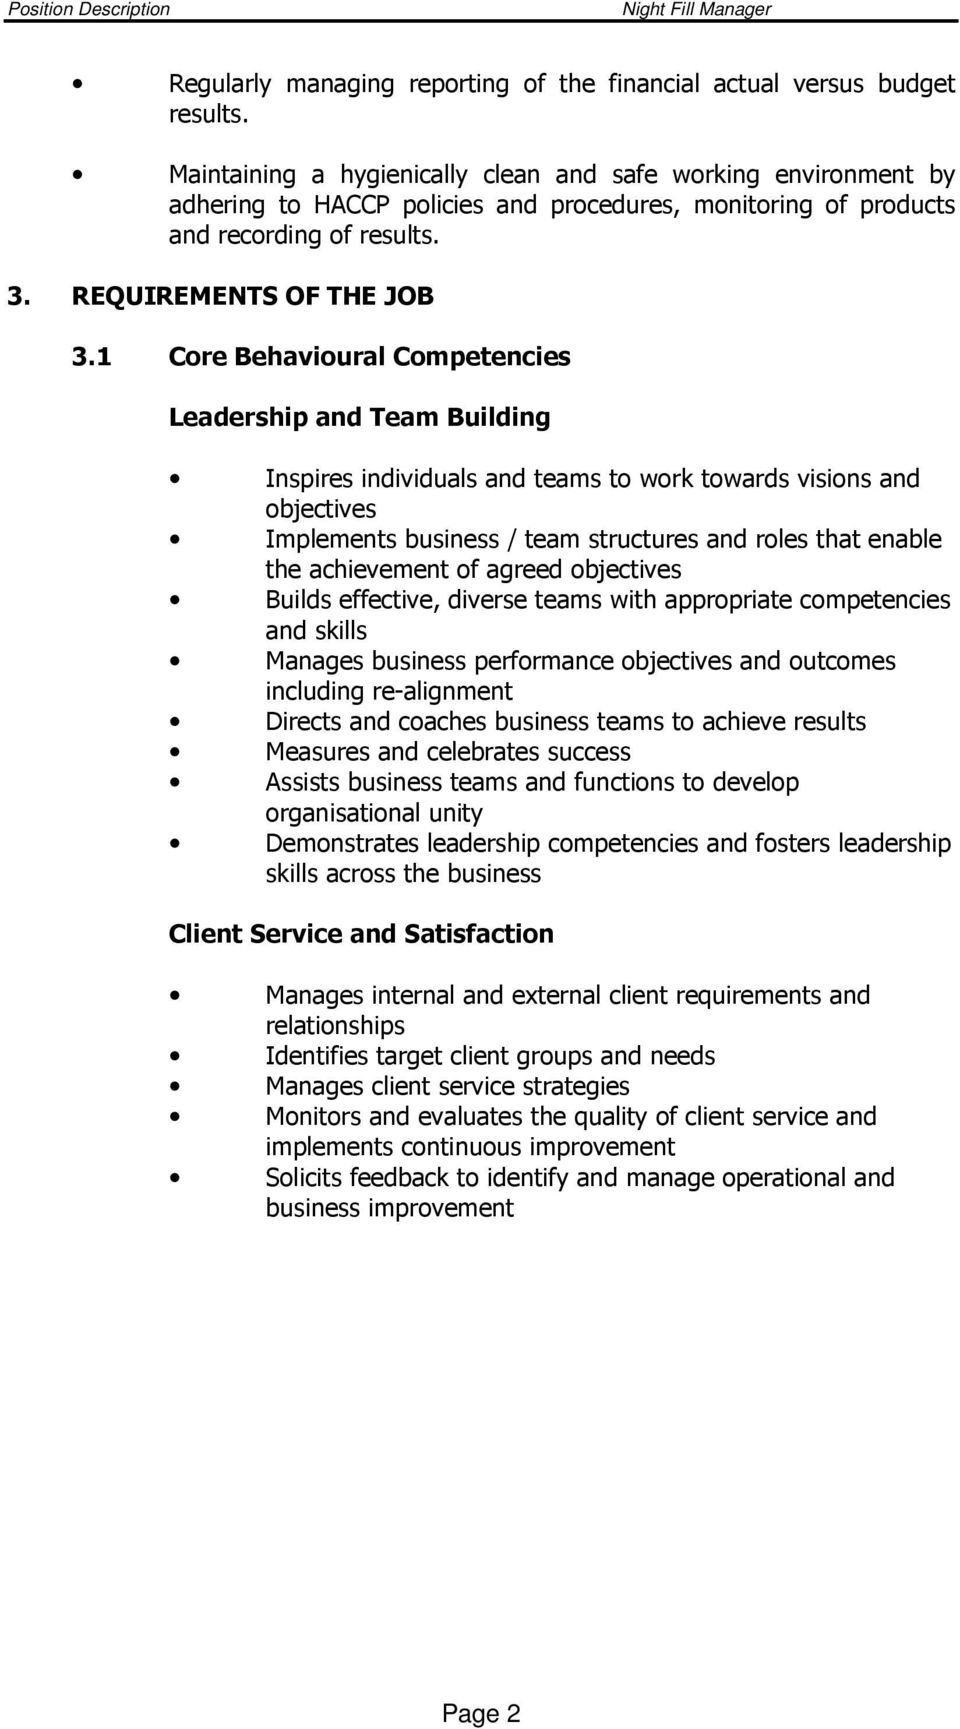 1 Core Behavioural Competencies Leadership and Team Building Inspires individuals and teams to work towards visions and objectives Implements business / team structures and roles that enable the